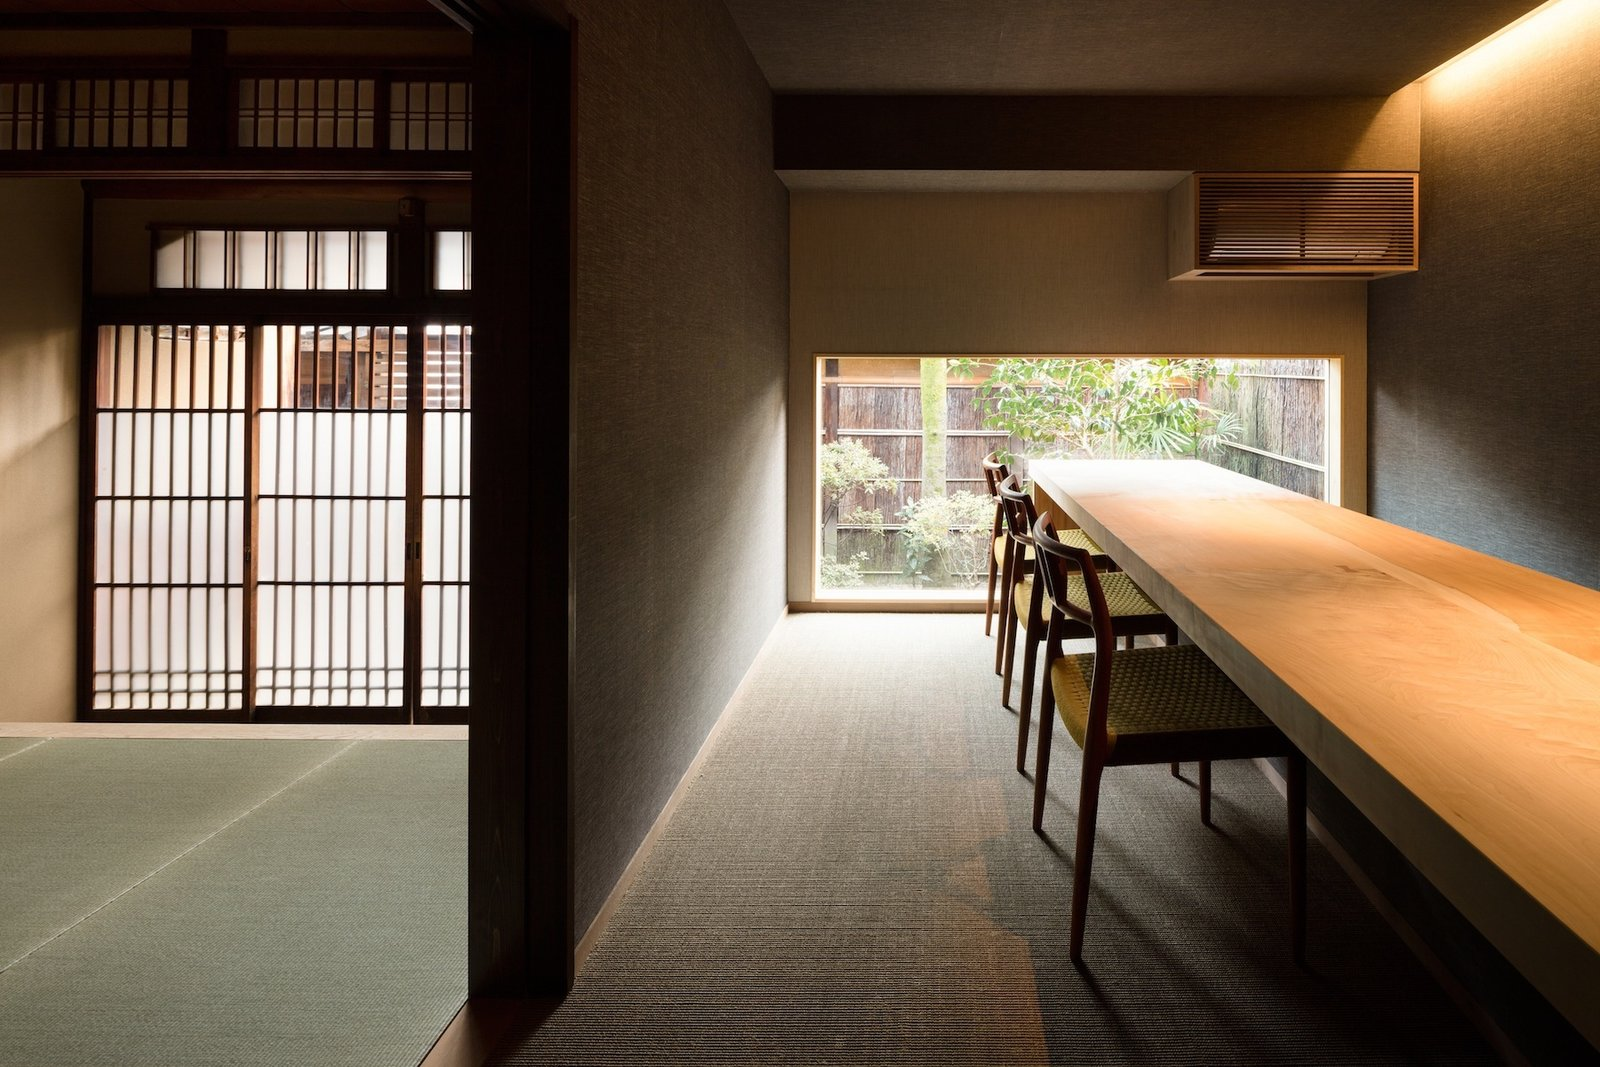 Dining Room, Table, Chair, Recessed Lighting, and Carpet Floor  Nichinichi Townhouse from A Minimalist Townhouse Provides Serene Accommodations in Historic Kyoto